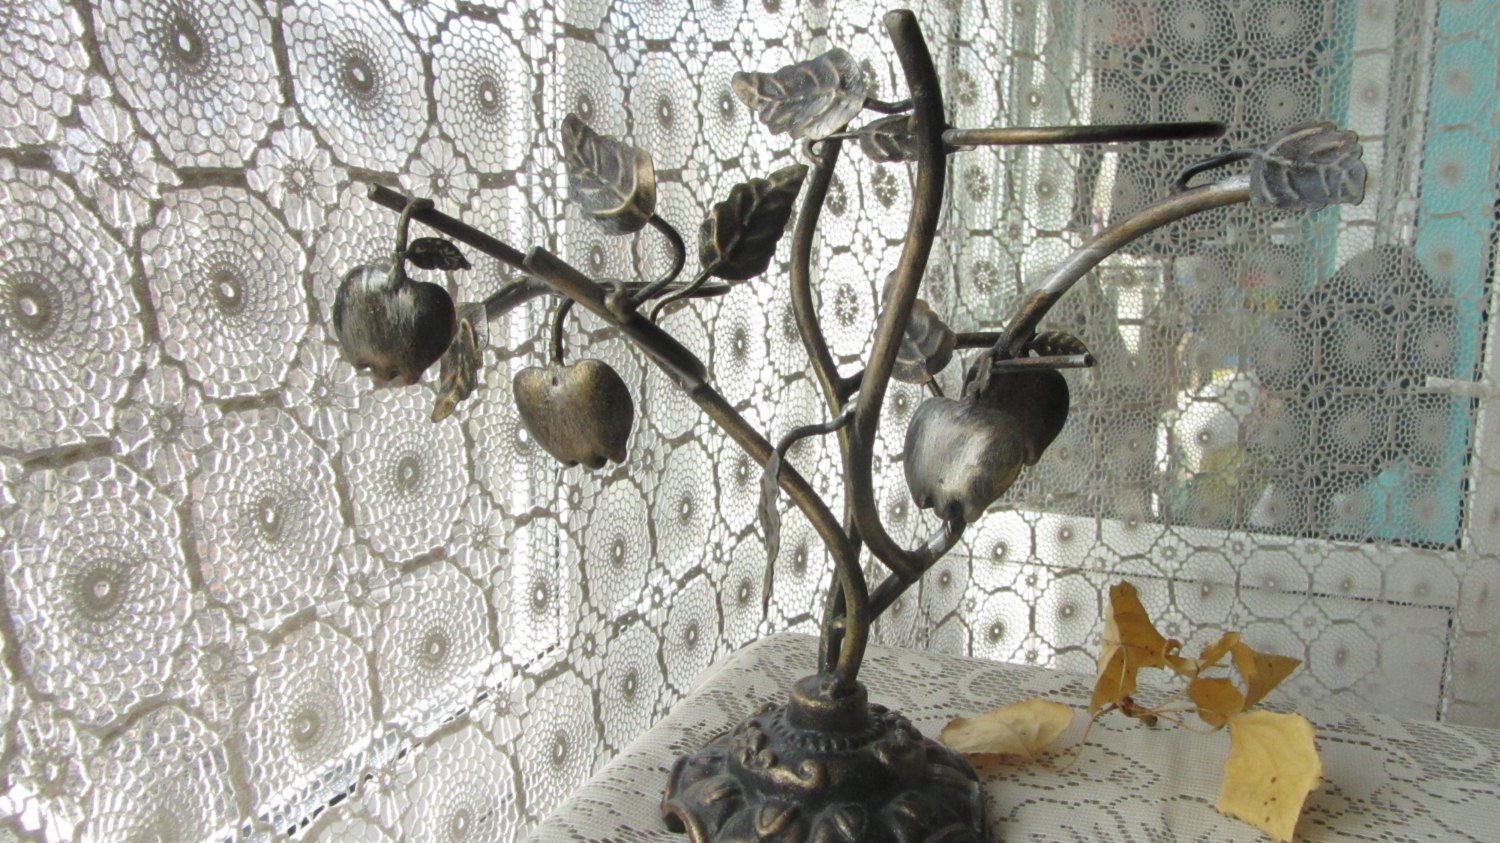 Vintage Metal Tree Candle Holders with leaves, Metalland Tree Candle Holders, Rustic Vintage Metal C